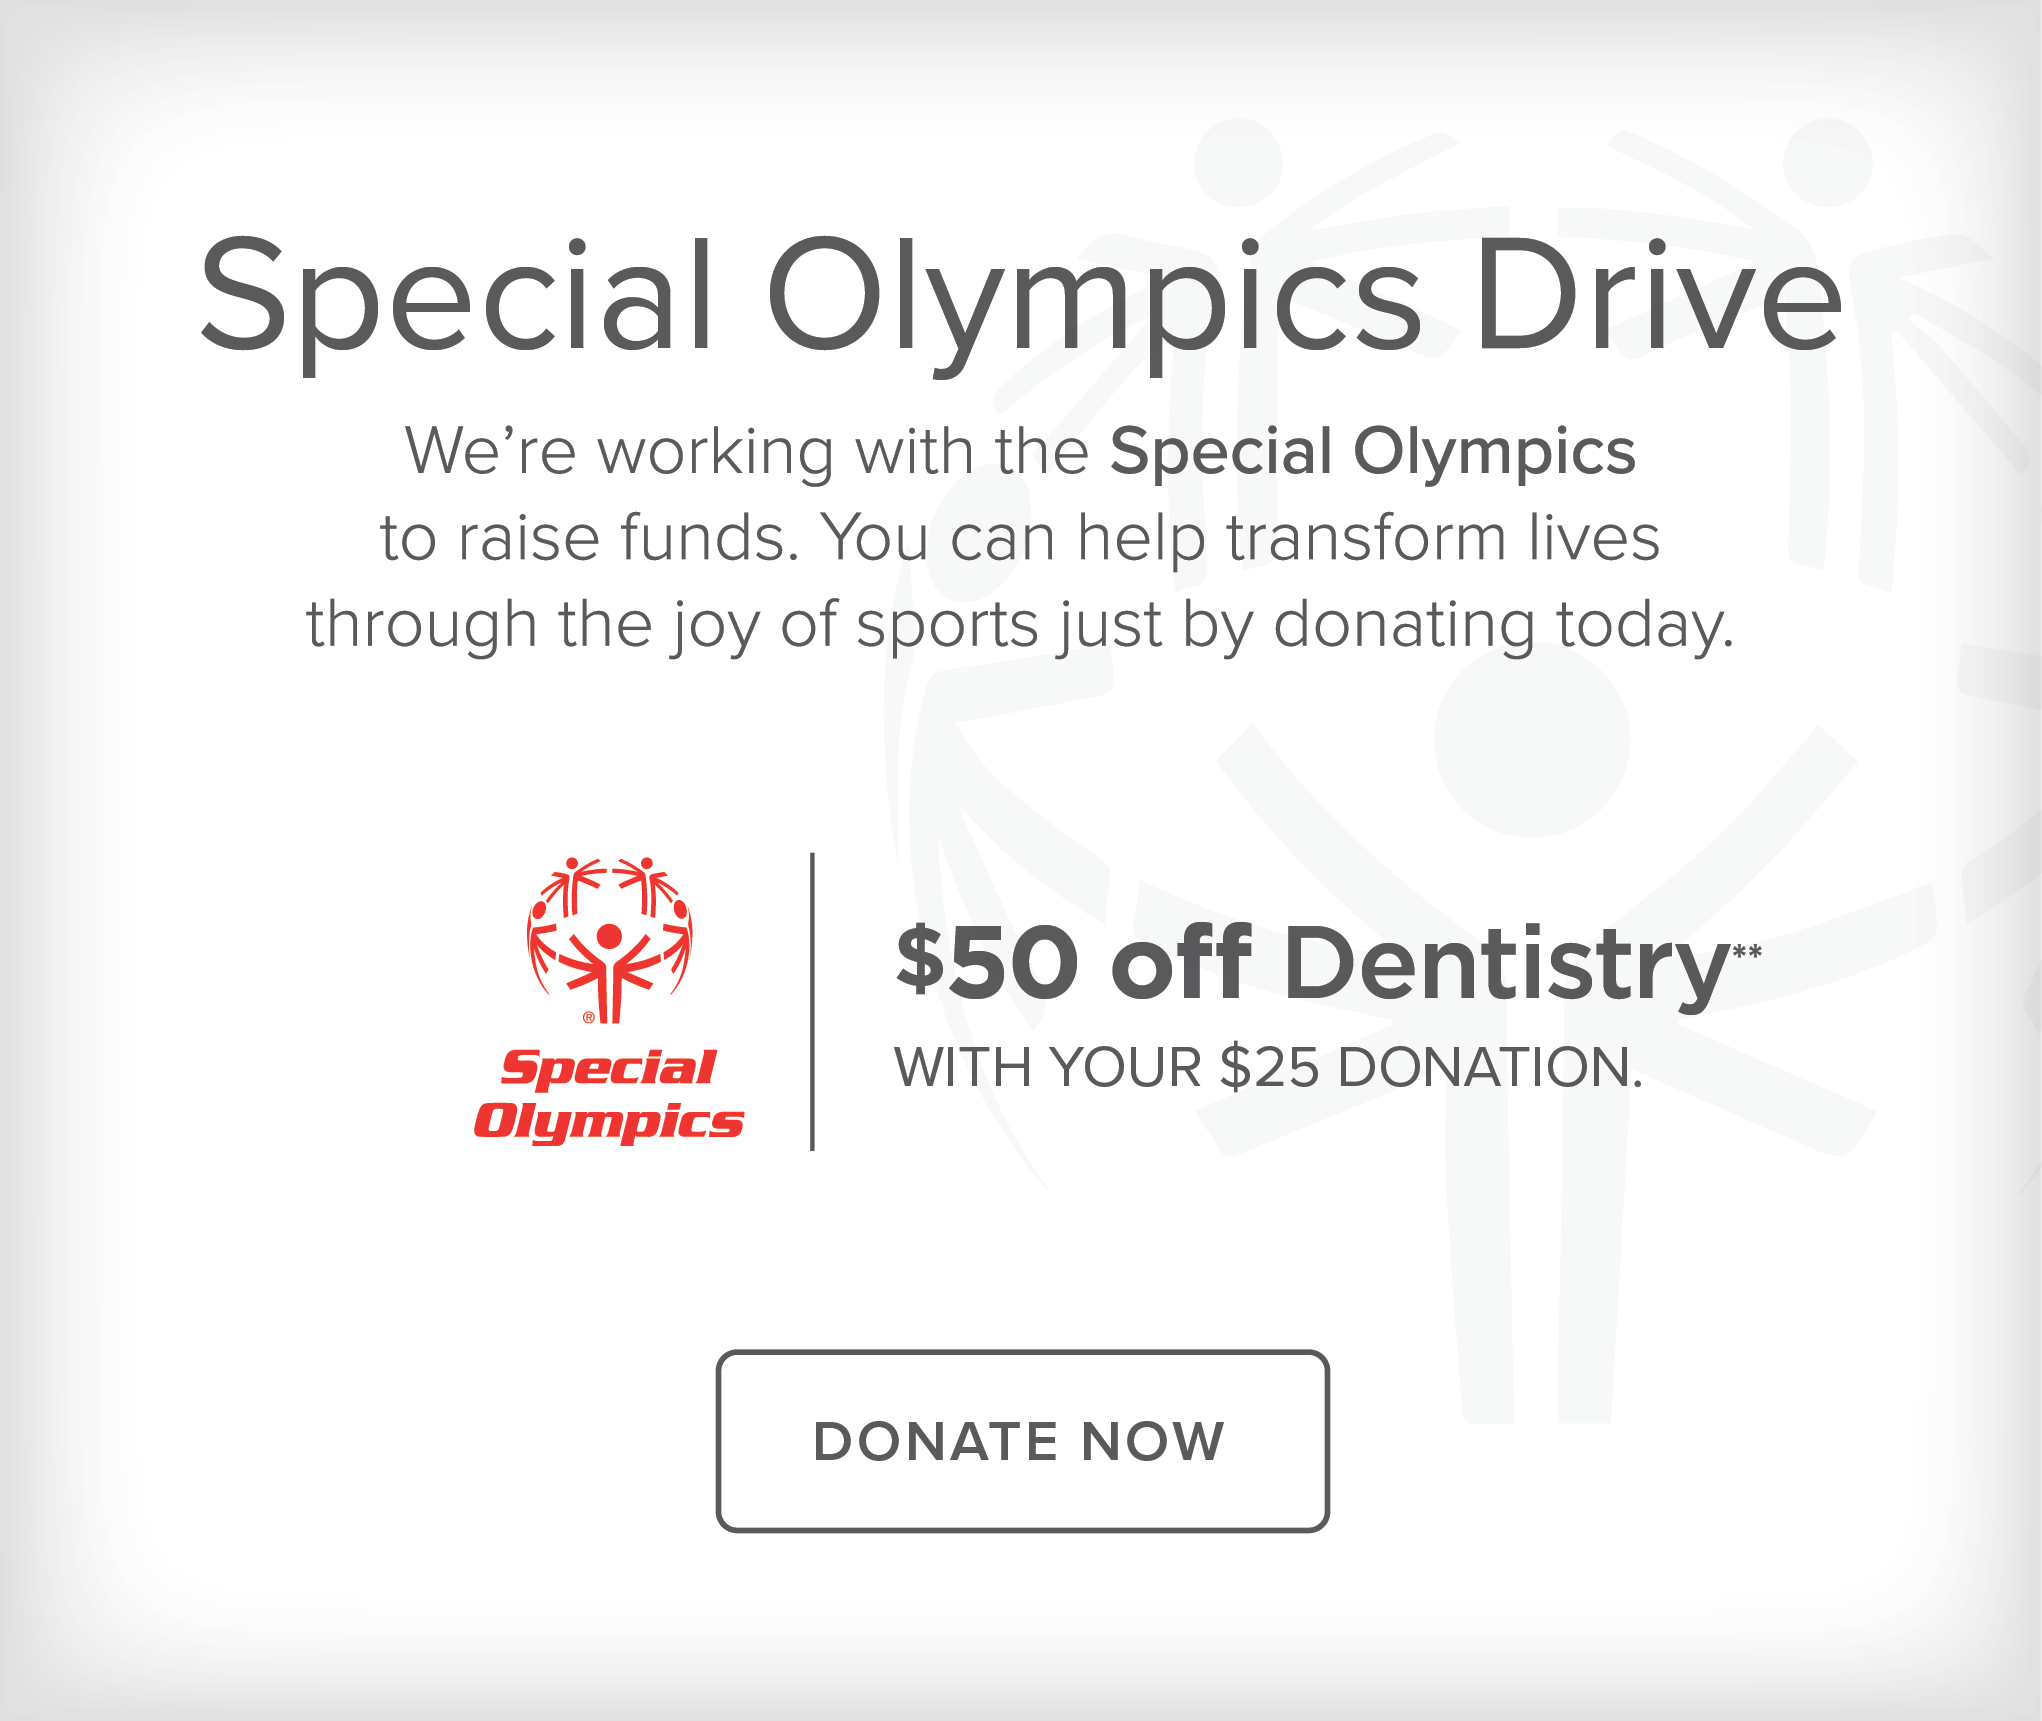 Special Olympics Drive - Greeley Modern Dentistry and Orthodontics